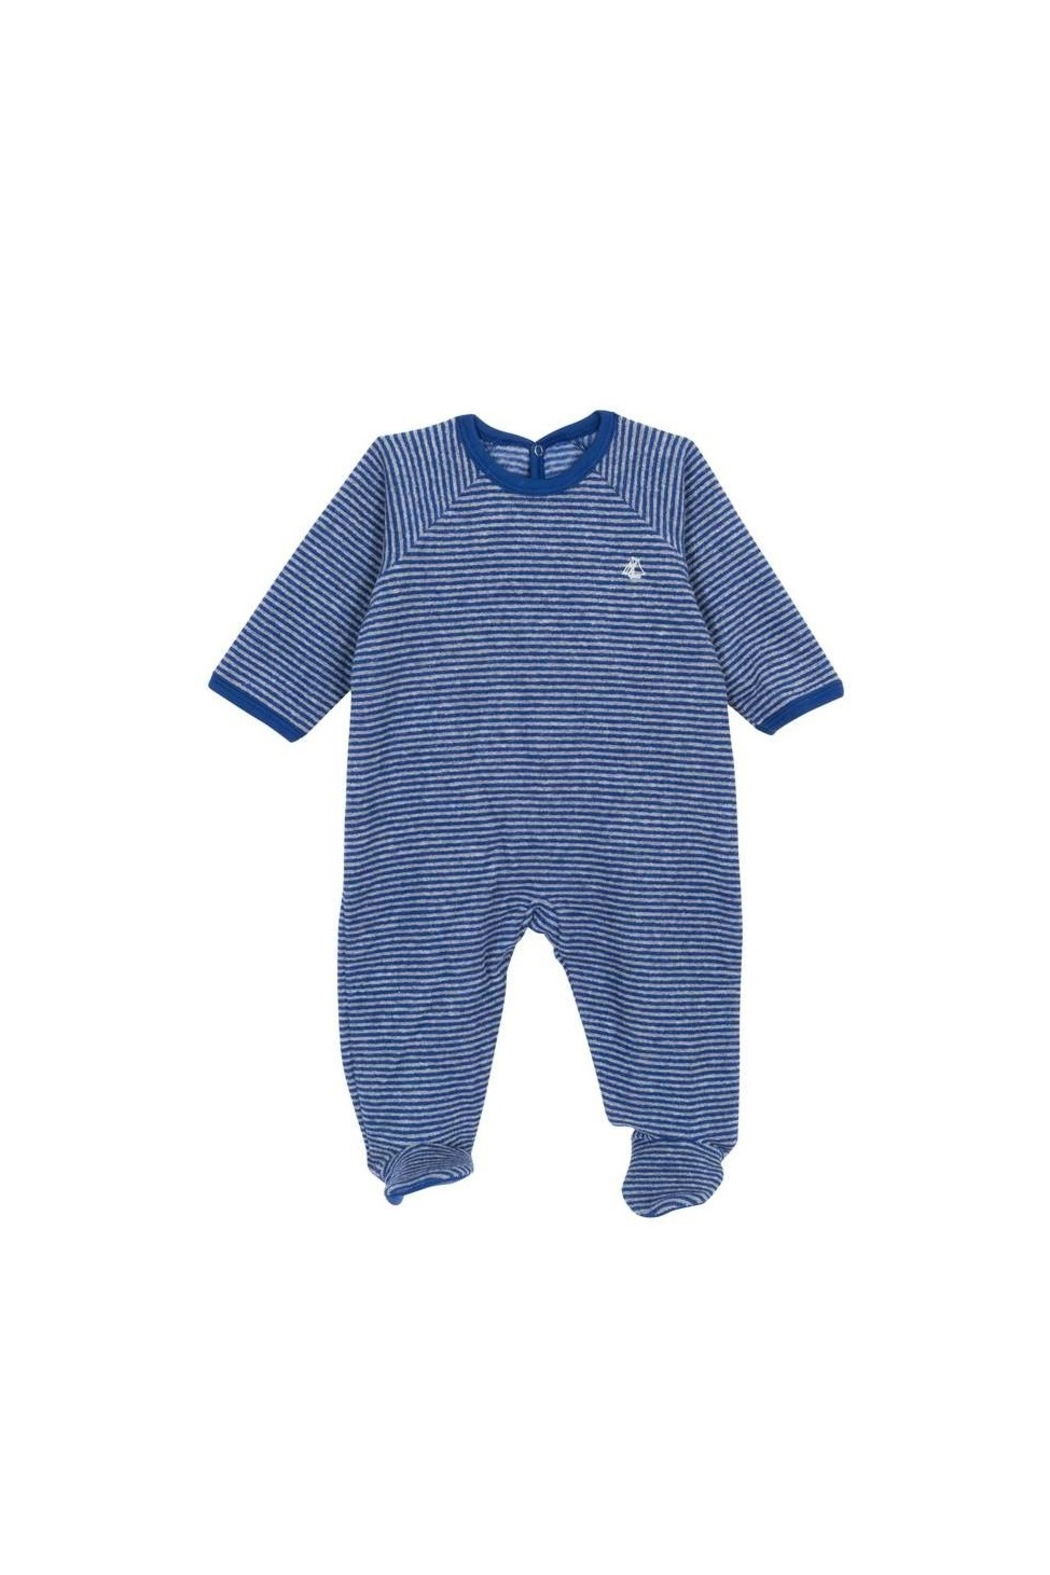 Petit Bateau - Unisex Baby Footie  - Striped terry sleeper with back drop snaps - Front Cropped Image